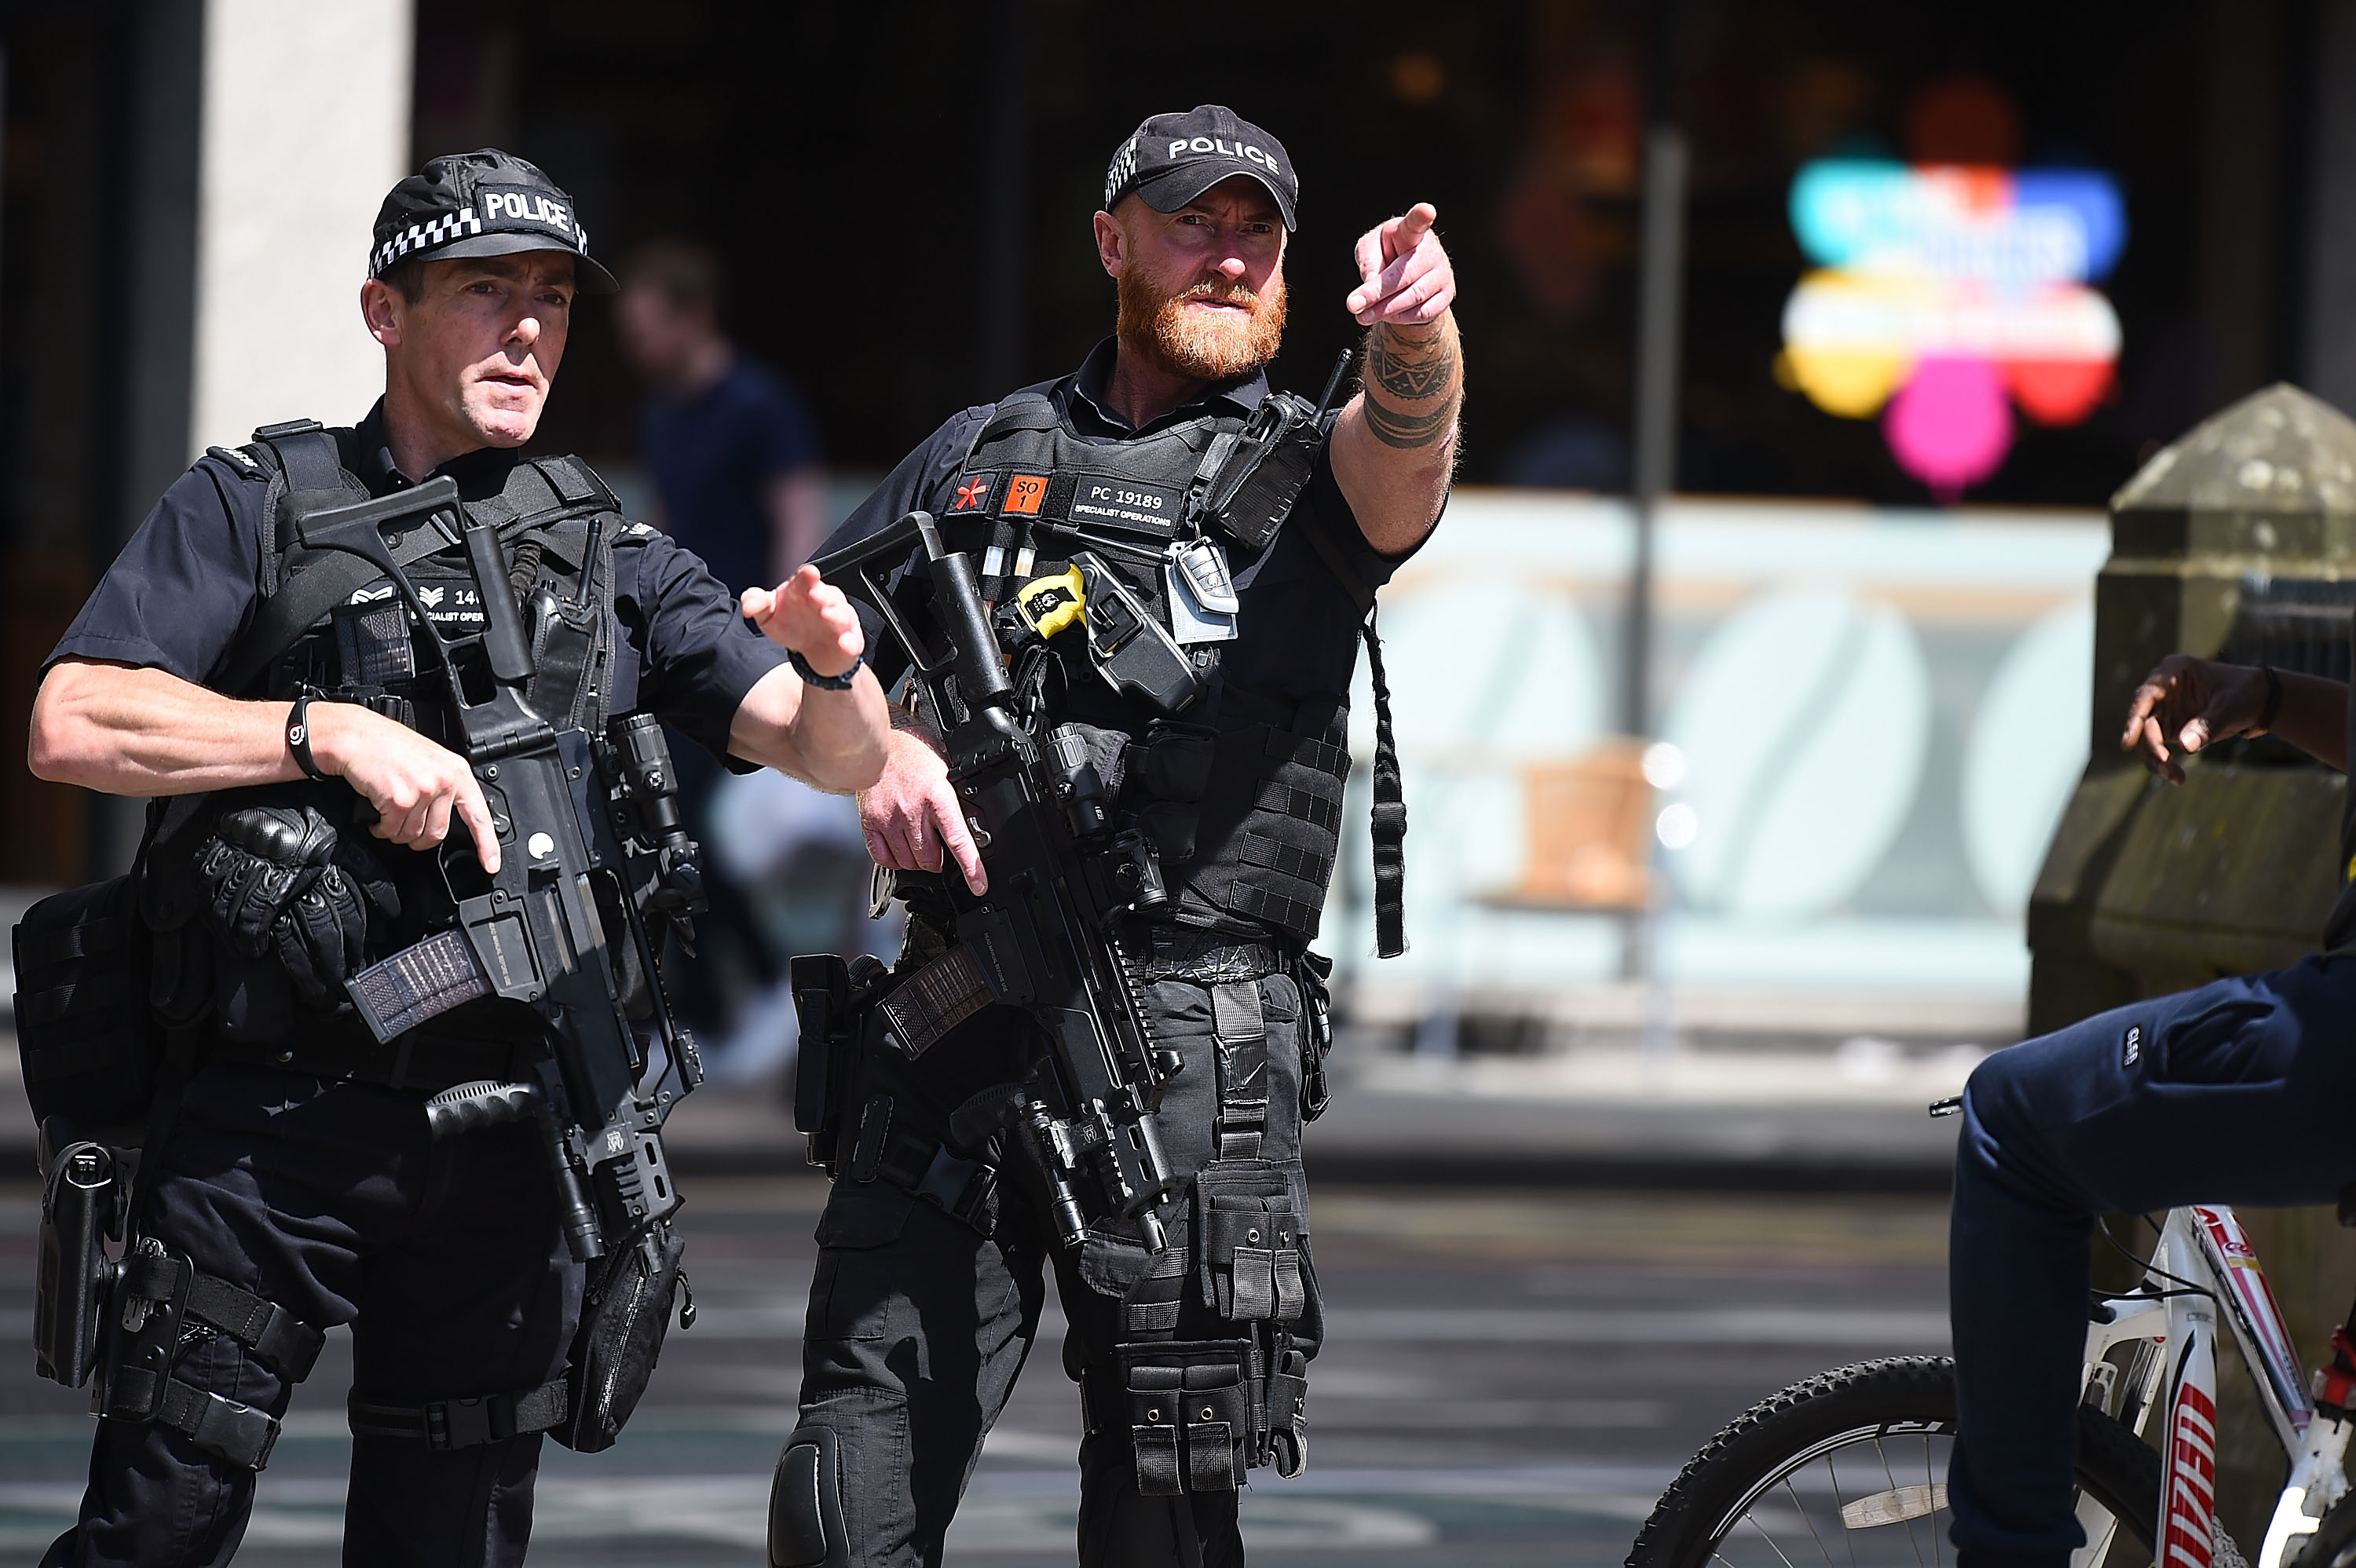 Police stand guard near the Manchester Arena on May 23, 2017 in Manchester, England.